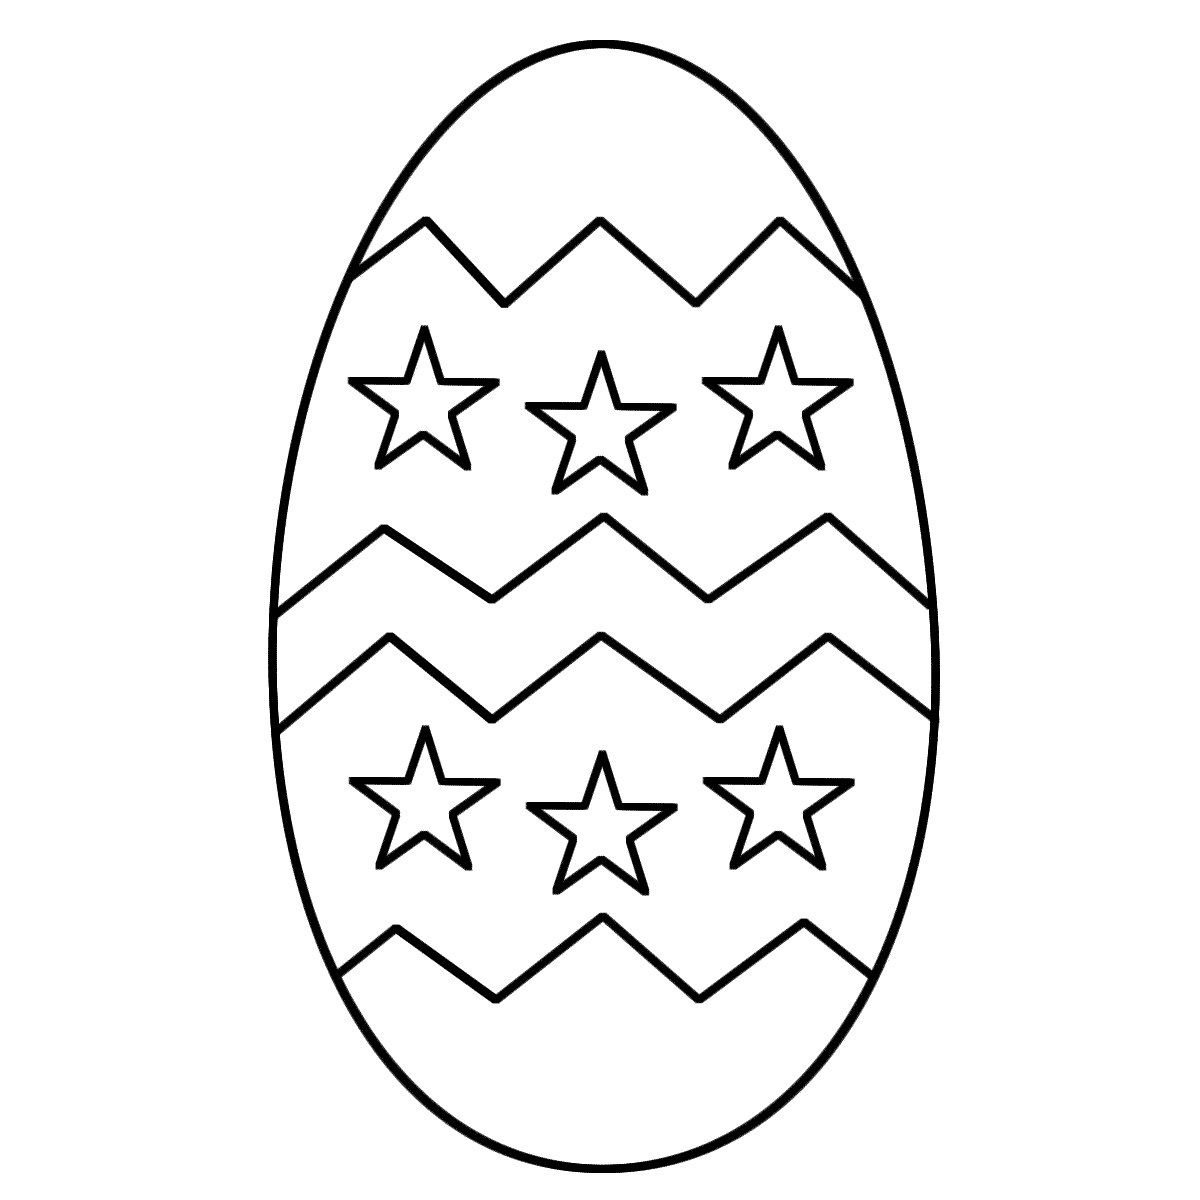 1200x1200 egg clipart colouring page - Easter Egg Coloring Pages